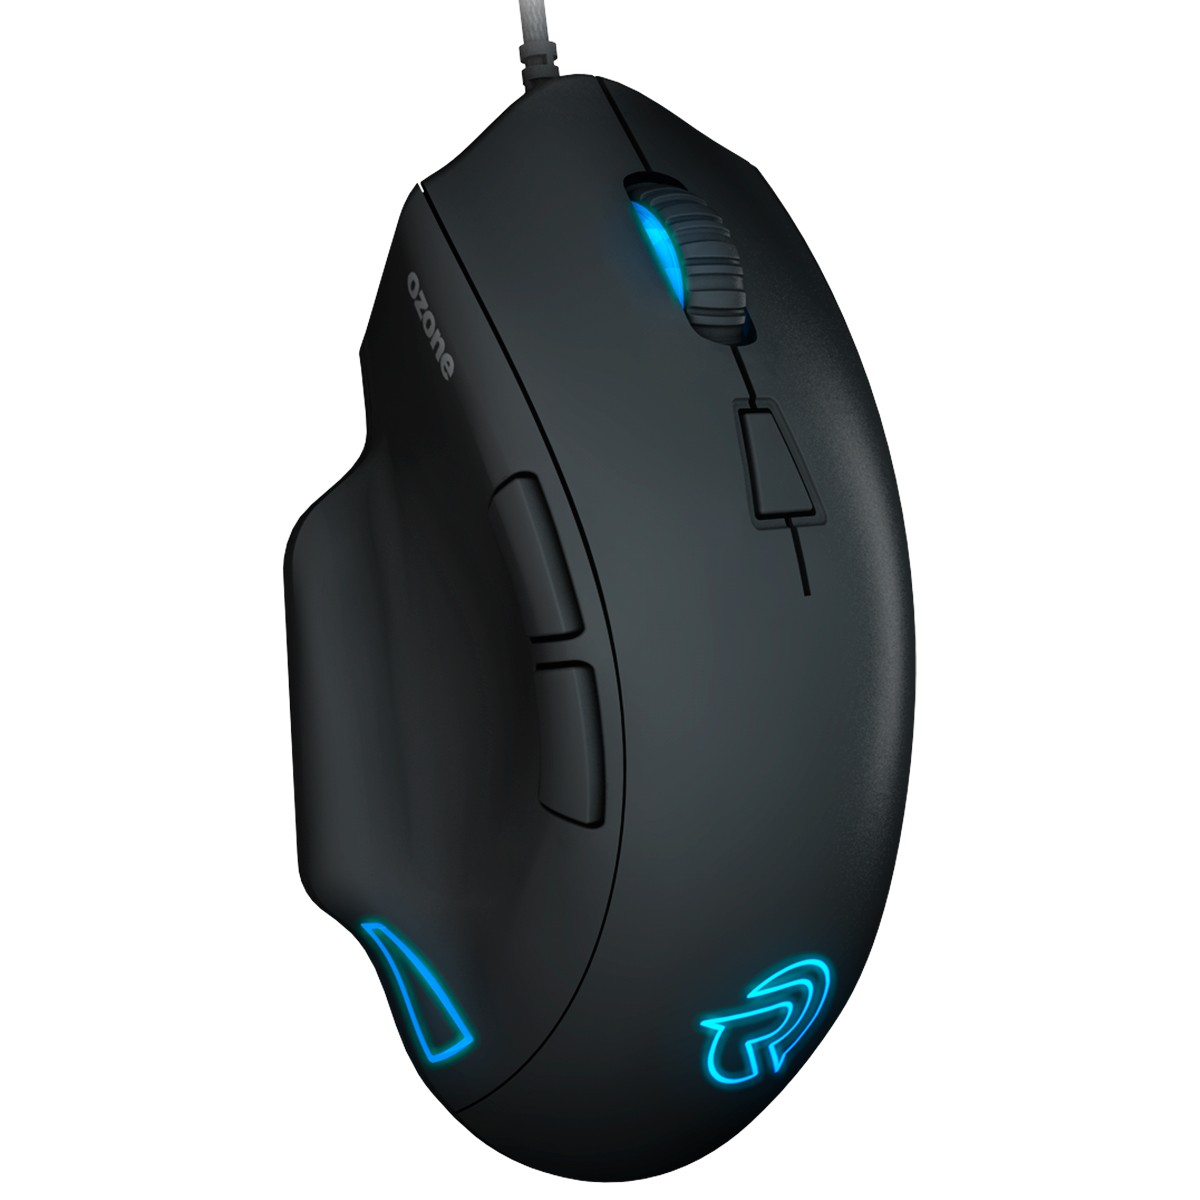 en-mouse-gaming-7000-dpi---optico-pixart-3310-ozone-exon-f60-origen